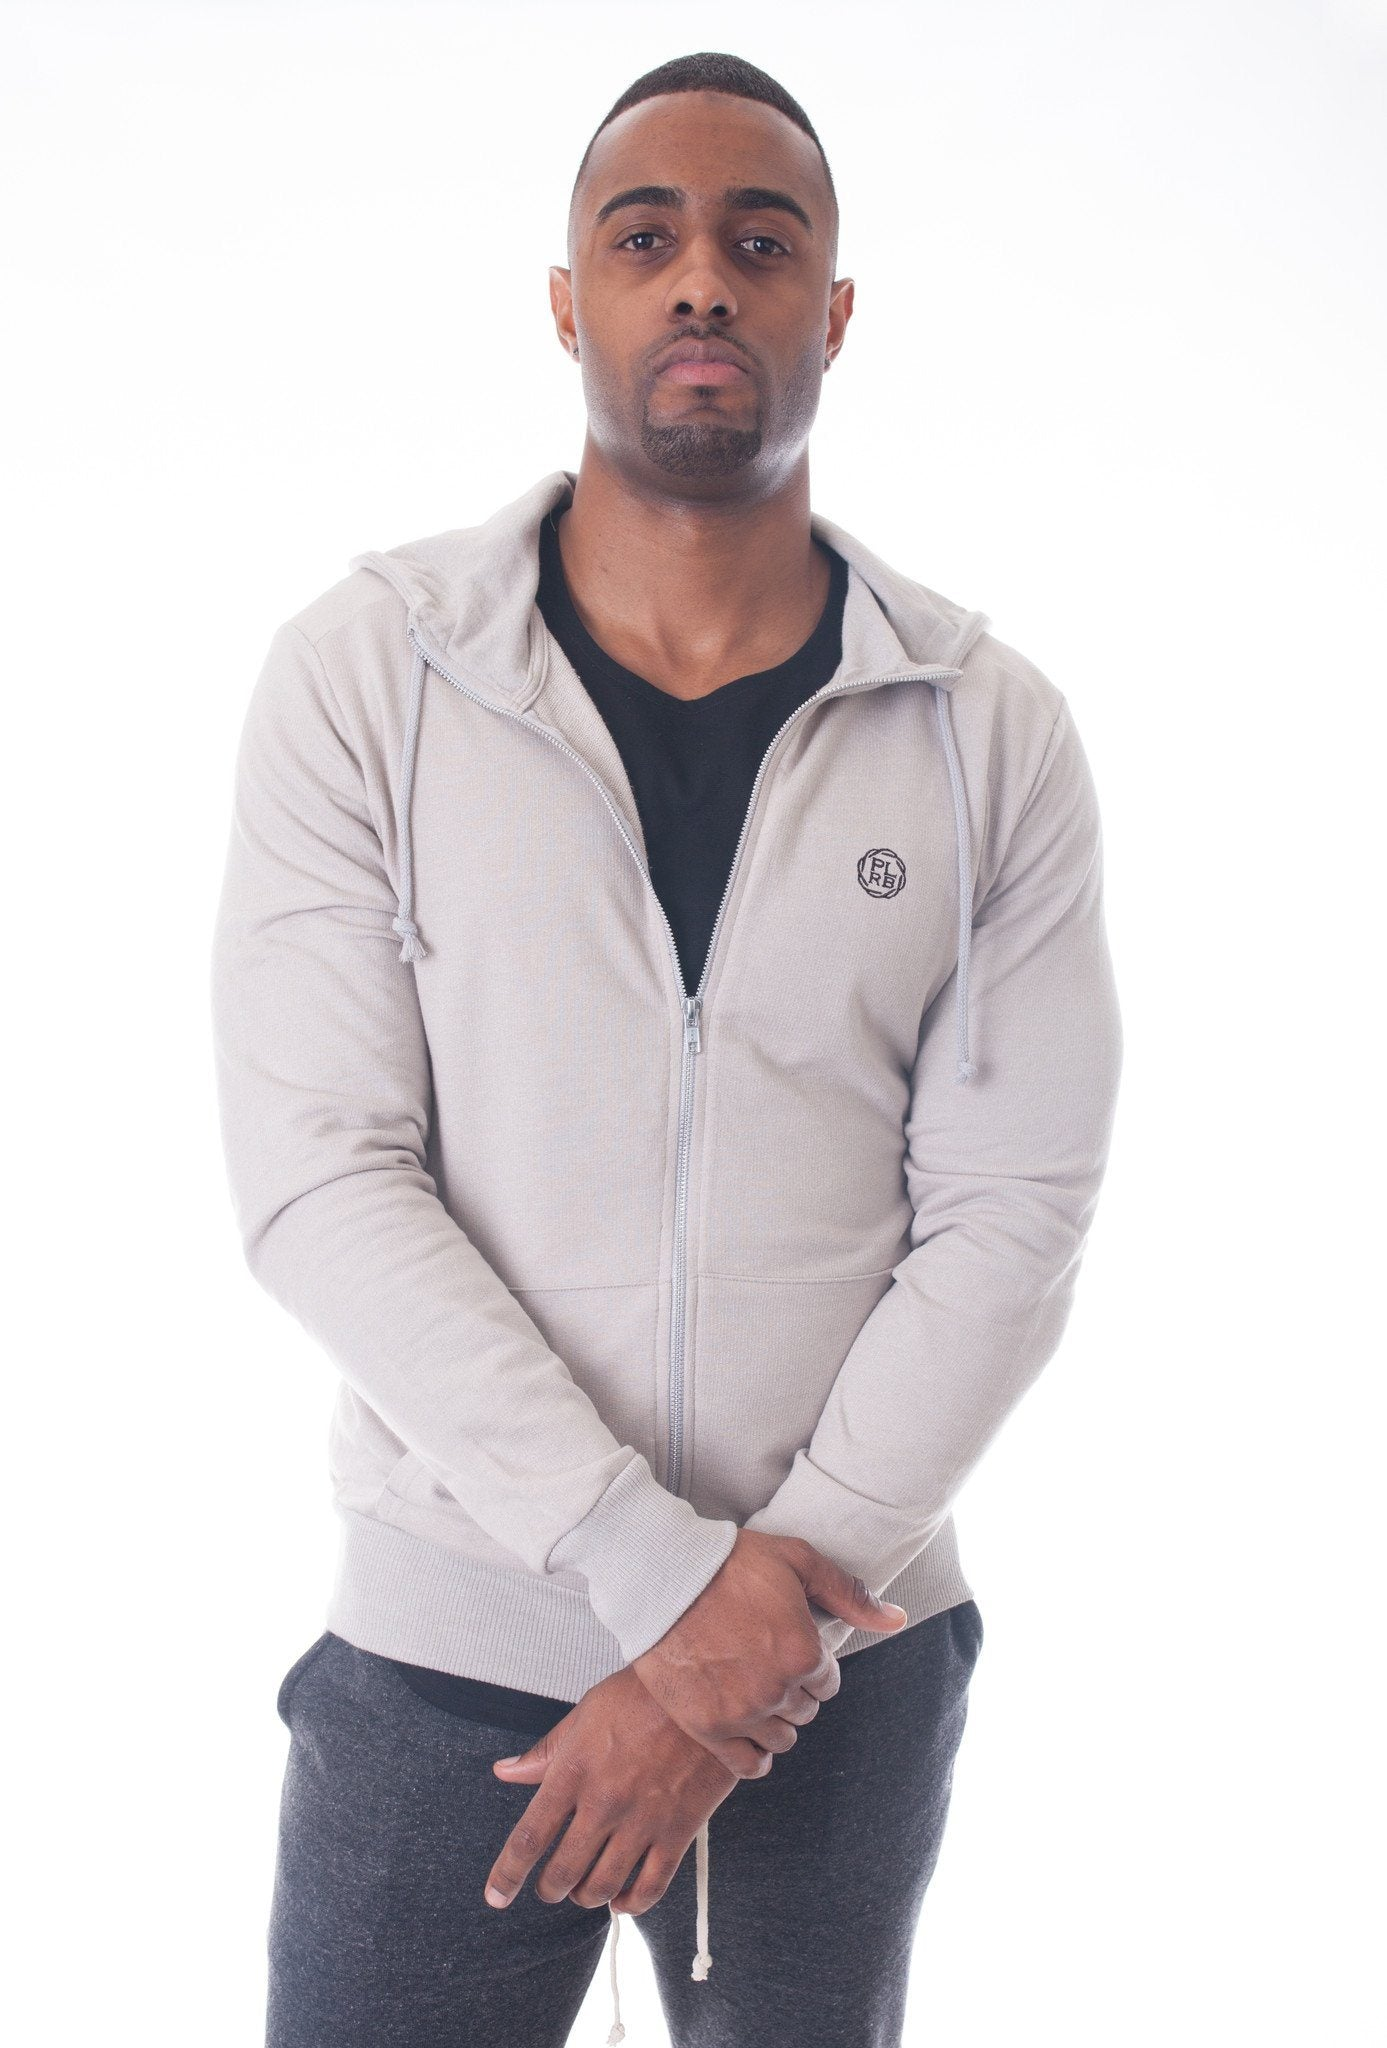 Mist Hooded Sweatshirt - Poor Little Rich Boy Men's Jackets and Outerwear - Plrbclothing.com